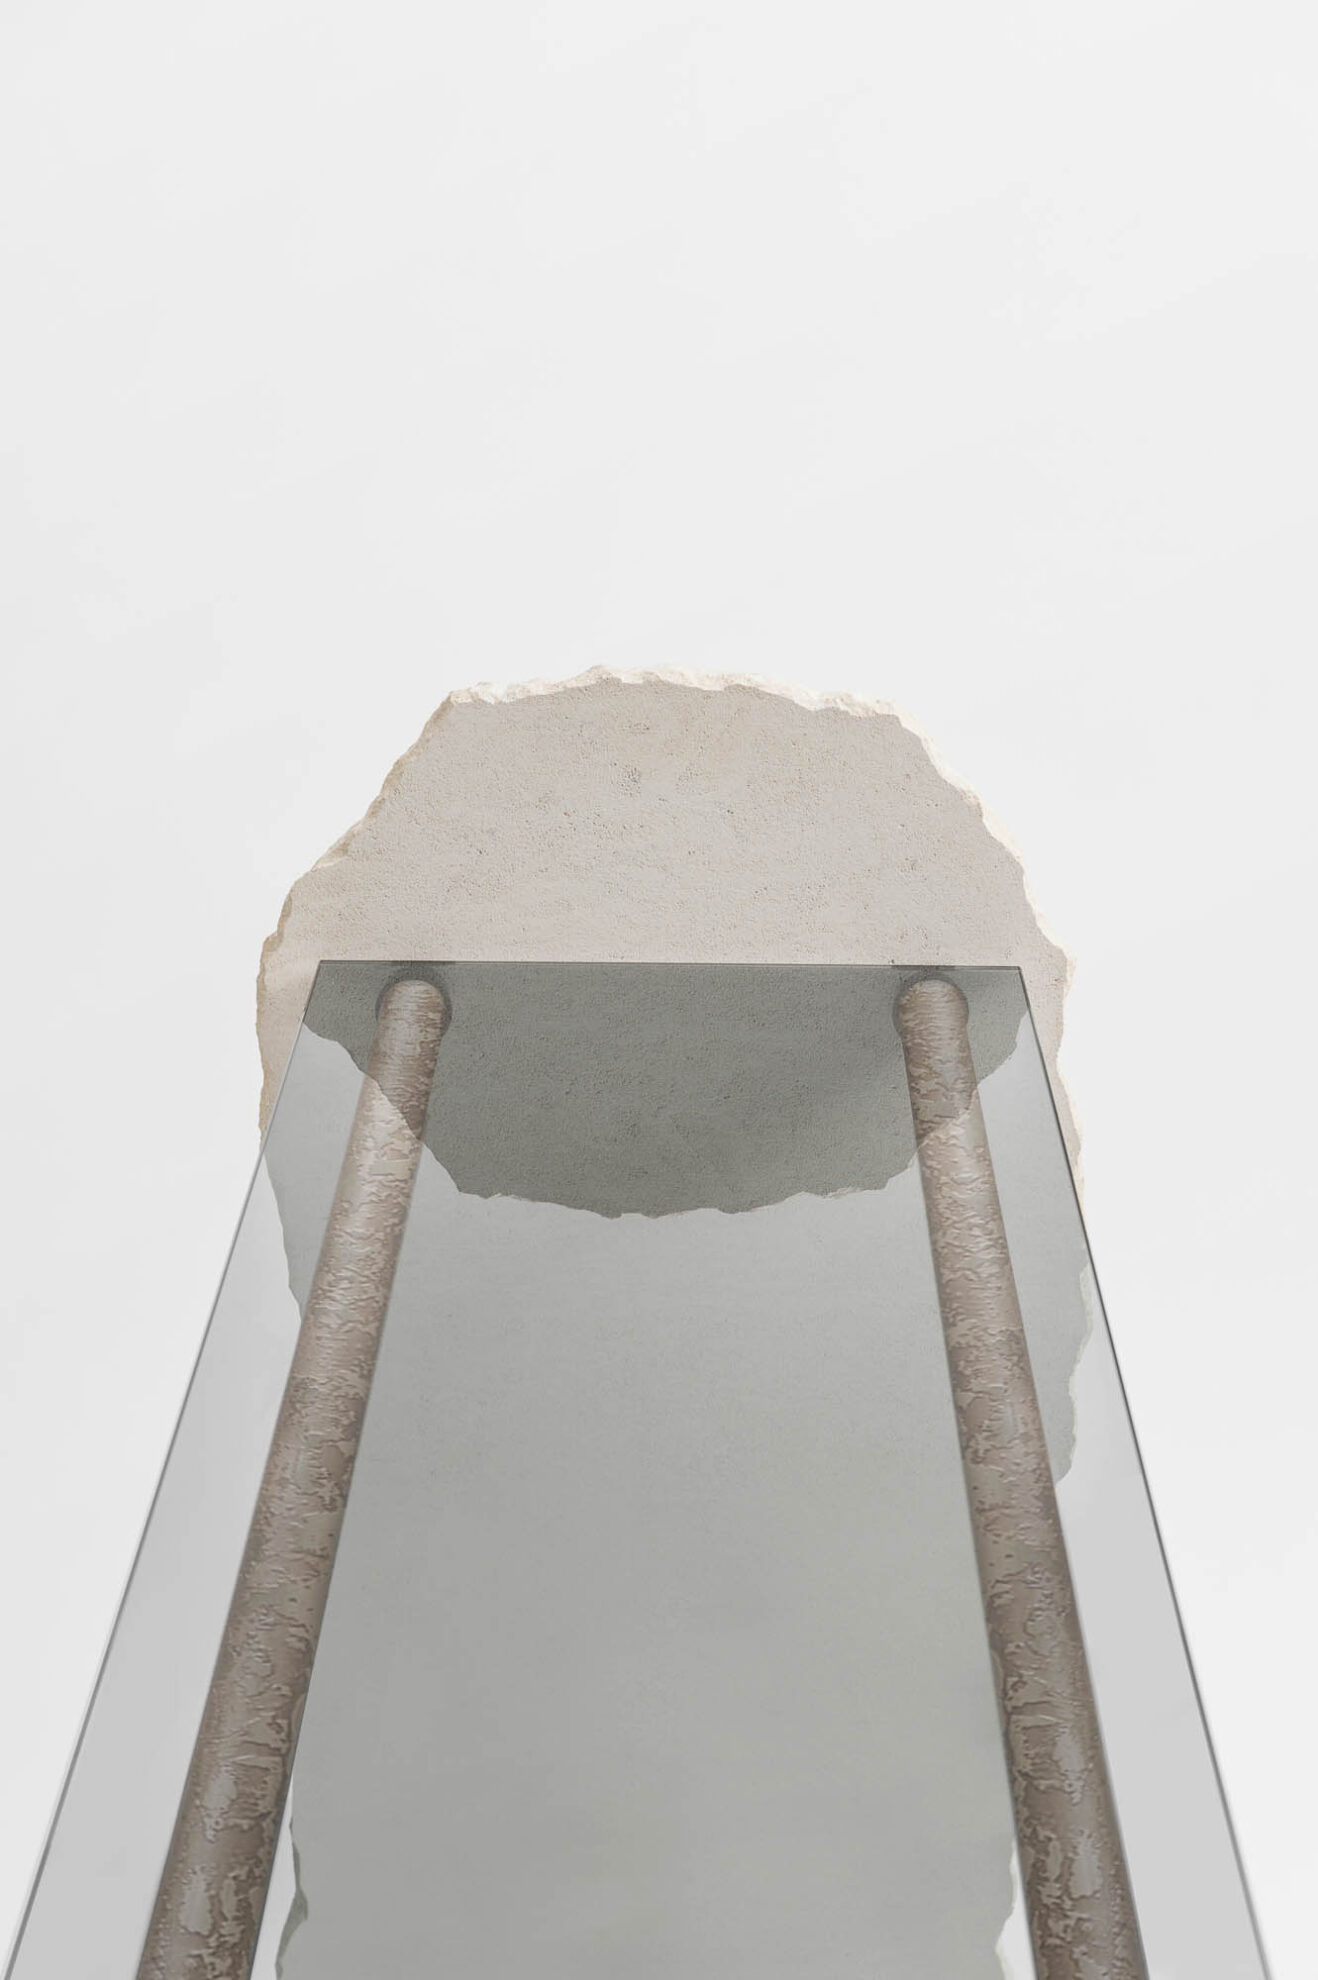 Frederic-Saulou-Stoique-Console-Savannah Bay Gallery-5